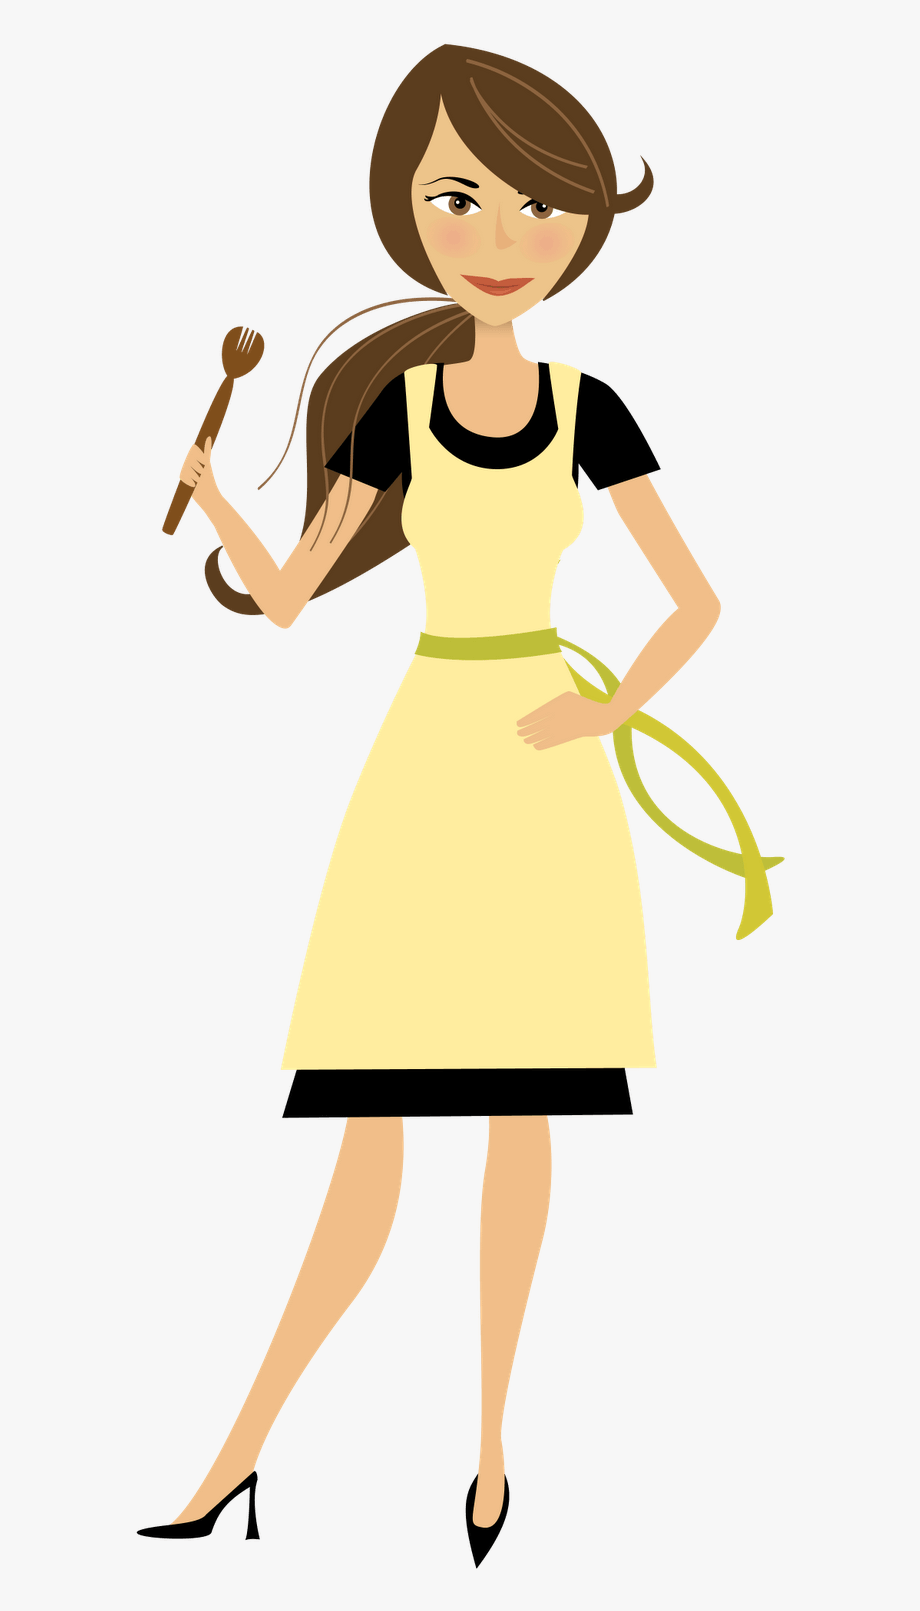 Wait mom clipart jpg download Cooking Mom Clipart - Cartoon Mom, Cliparts & Cartoons - Jing.fm jpg download